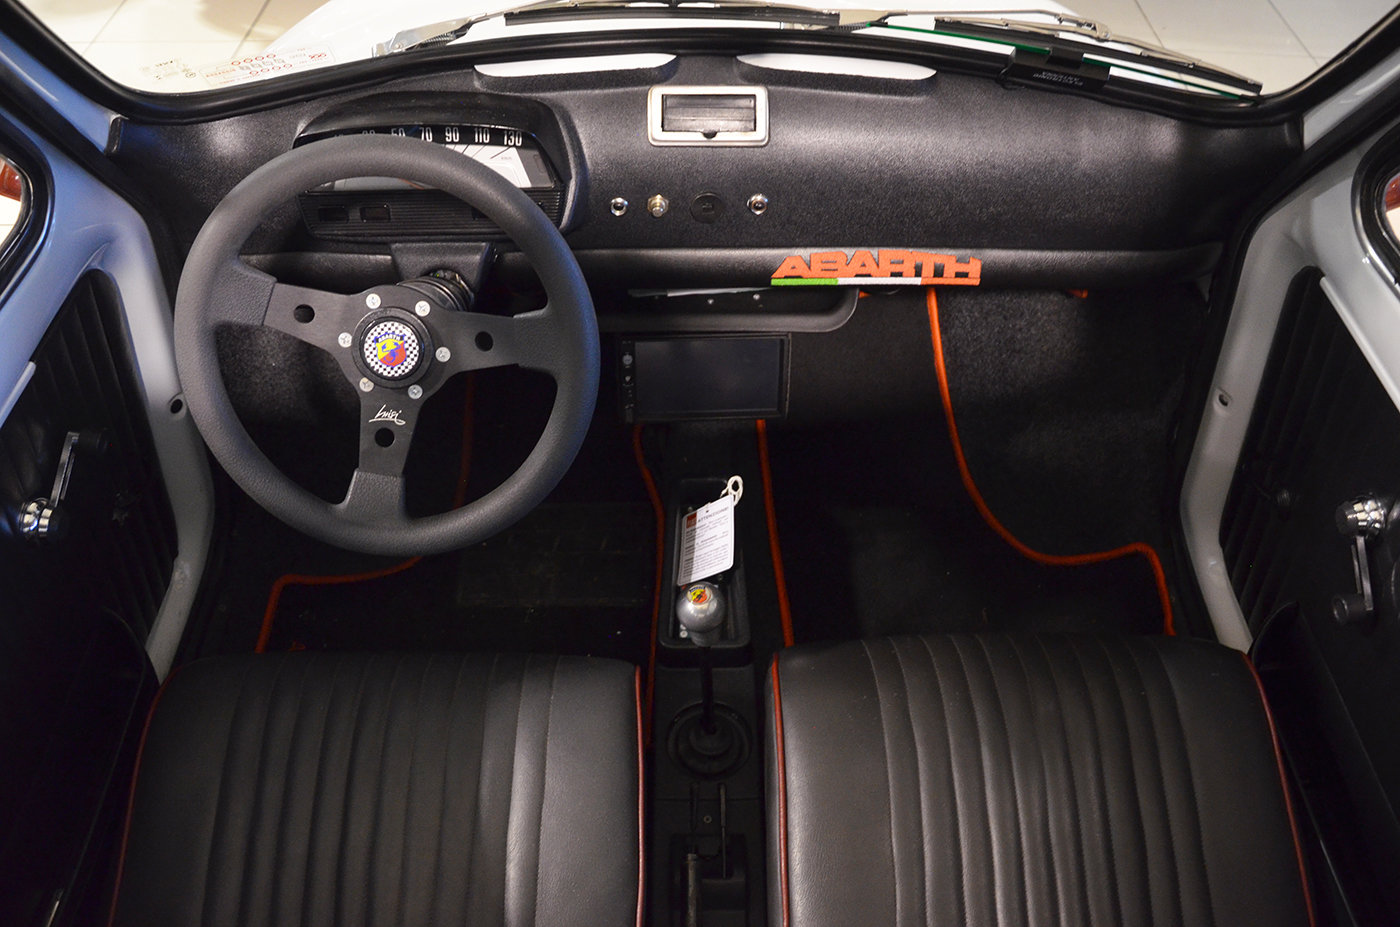 1971 - Fiat 500 L Abarth tribute For Sale (picture 4 of 6)